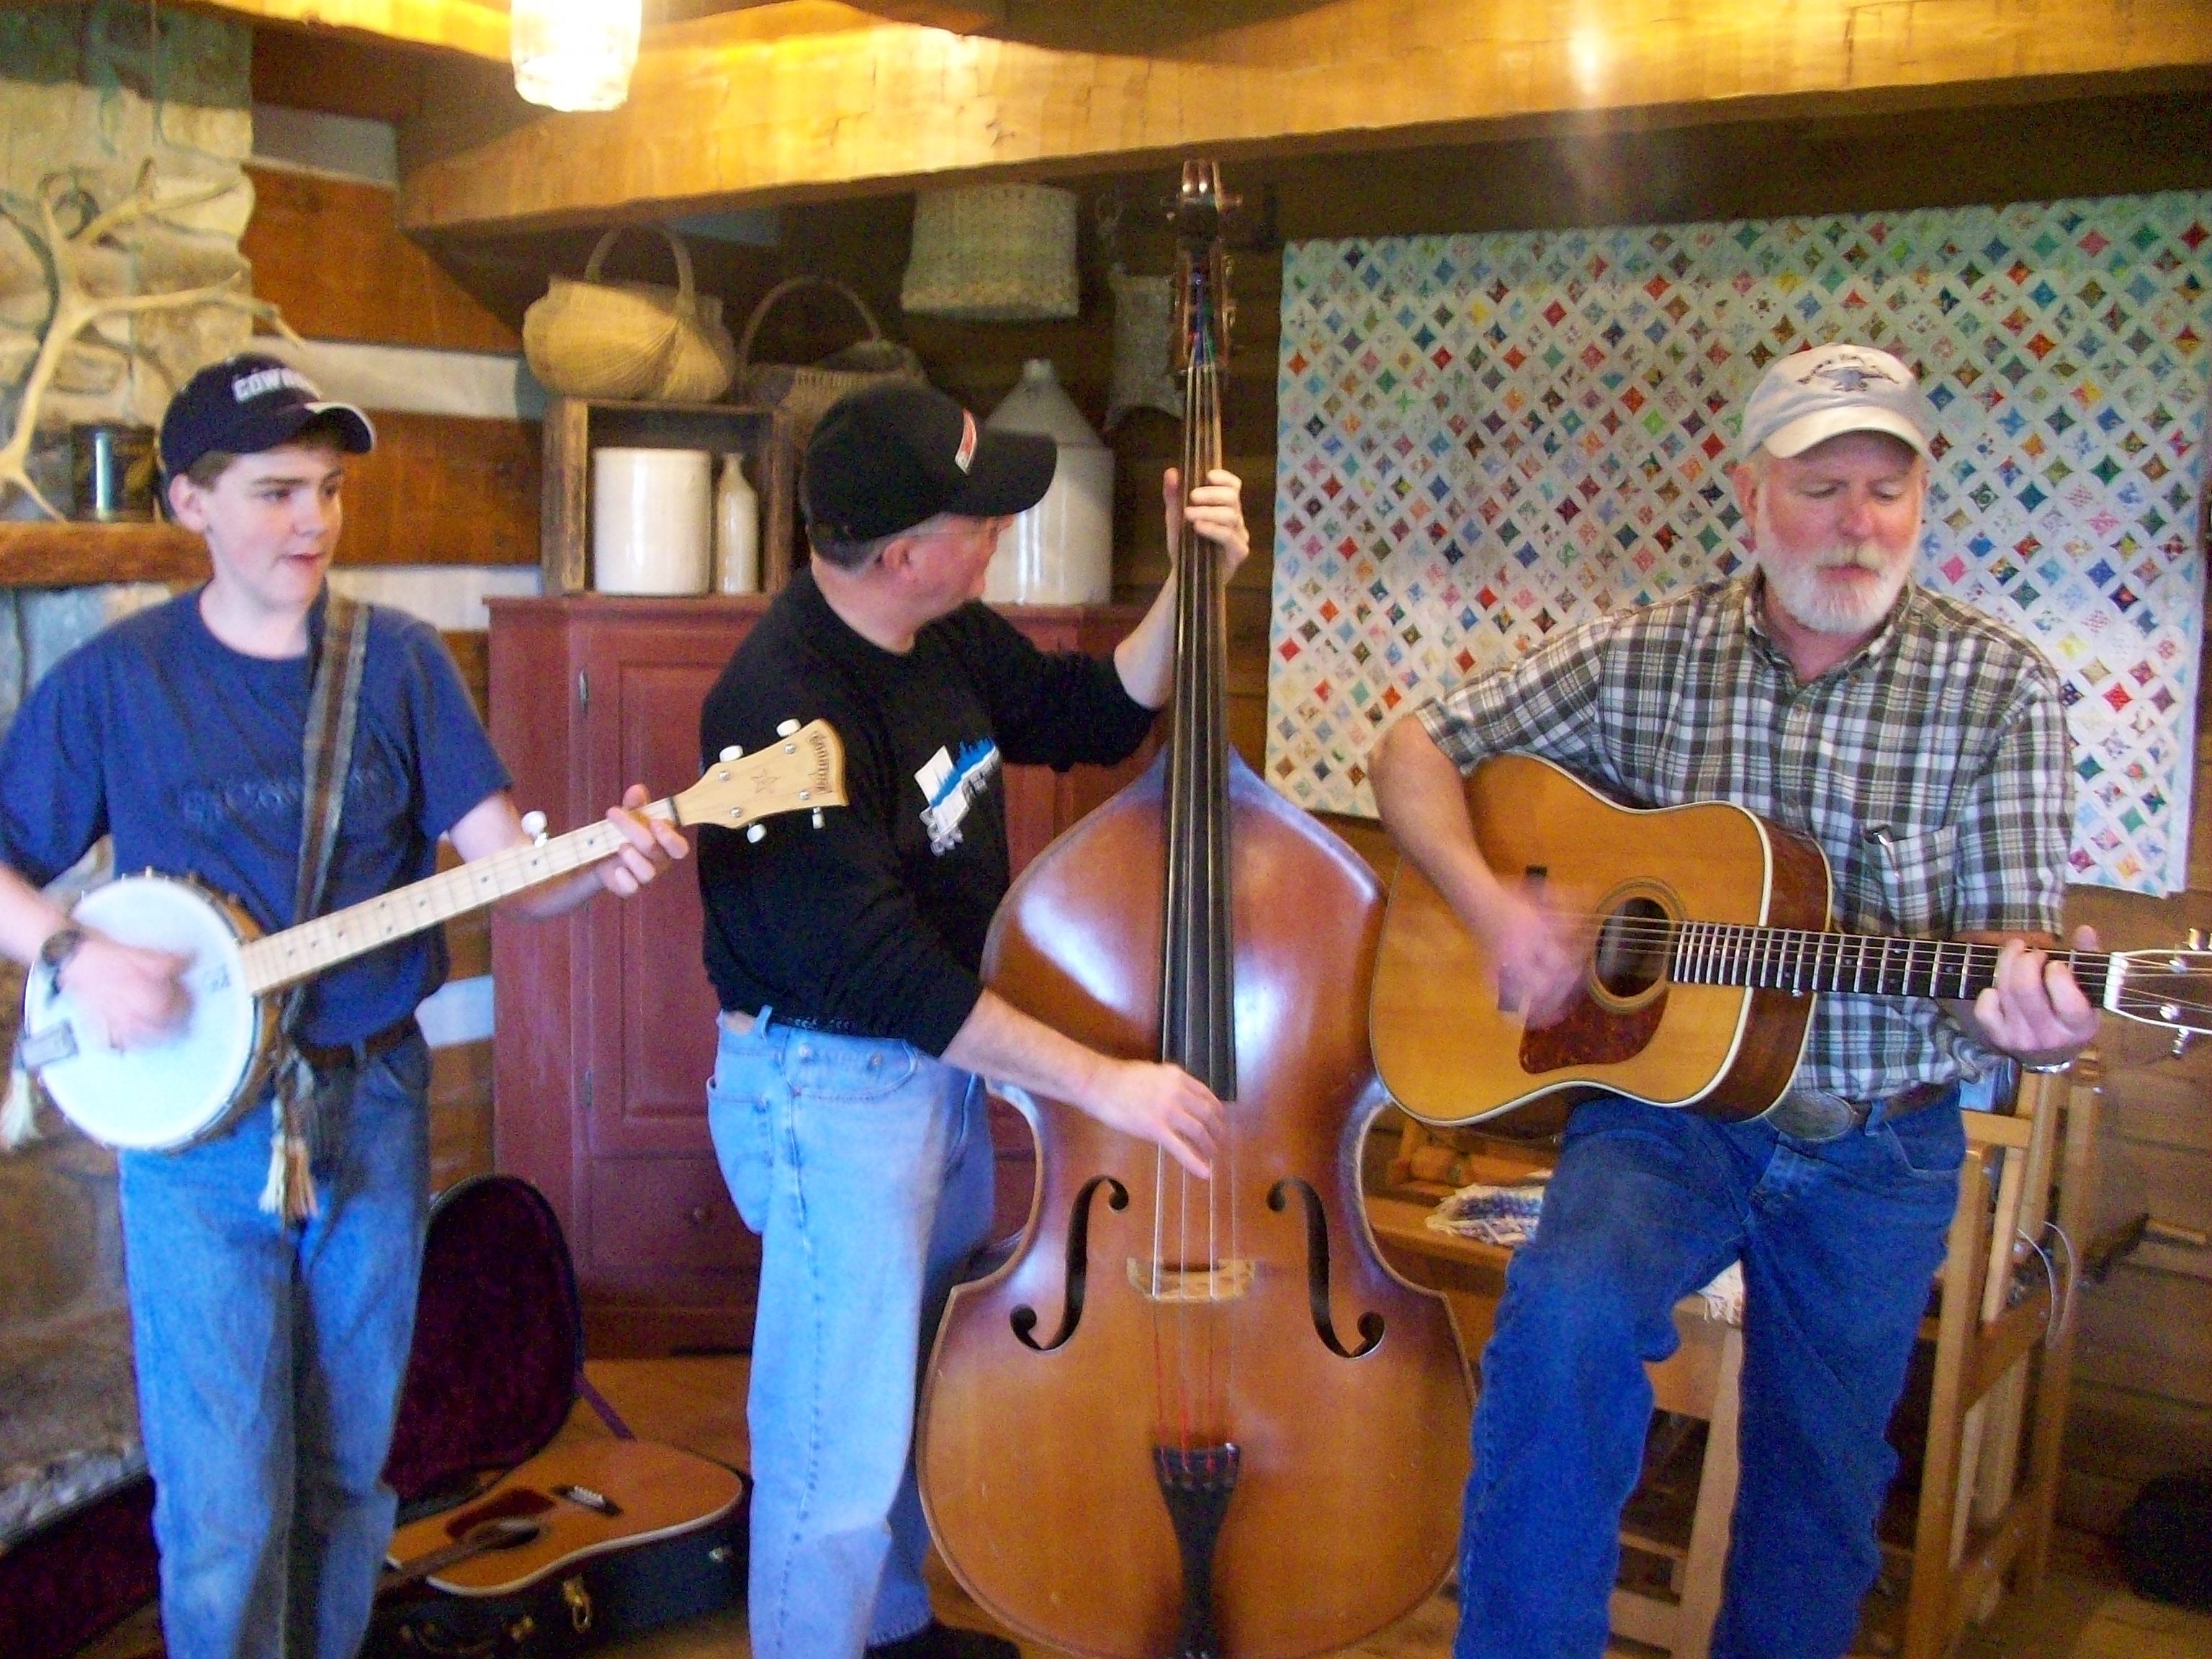 Playing bluegrass with my nephew Joseph (banjo) and brother Joe (guitar) at Joe's house in March